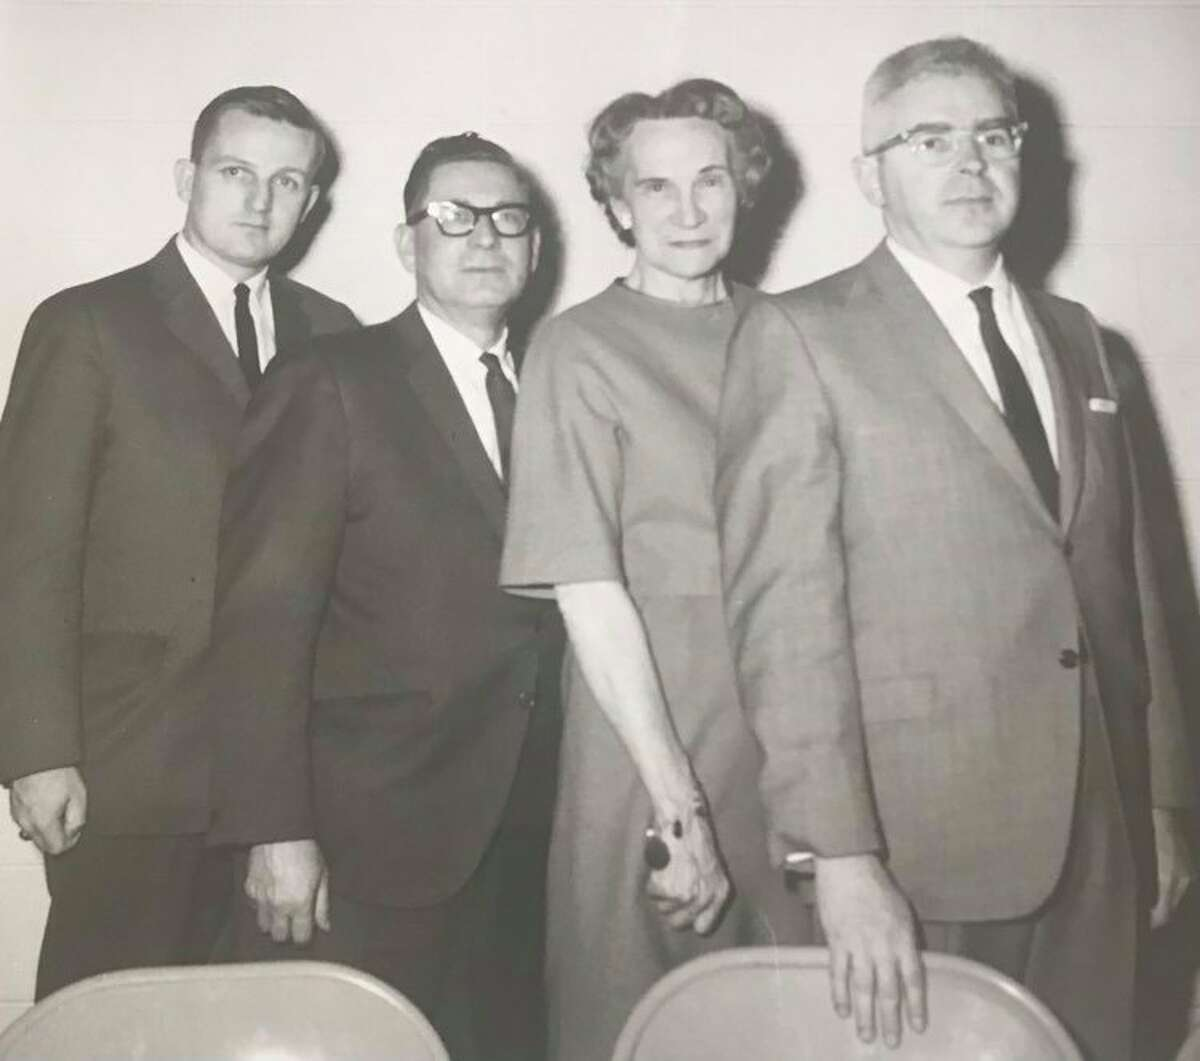 New officers of the Midland Downtown Business Association are, from left, Treasurer Alan W. Ott, vice president and cashier of Chemical Bank and Trust Company; President Benjamin F. Hines, manager of the local Sears & Roebuck store; Secretary Geraldine Yates of Katharine Stevens Shop, and Vice President Thomas King, owner of Callighan's Town and Country. Retiring MBA president is Marvin M. Stein. February 1965